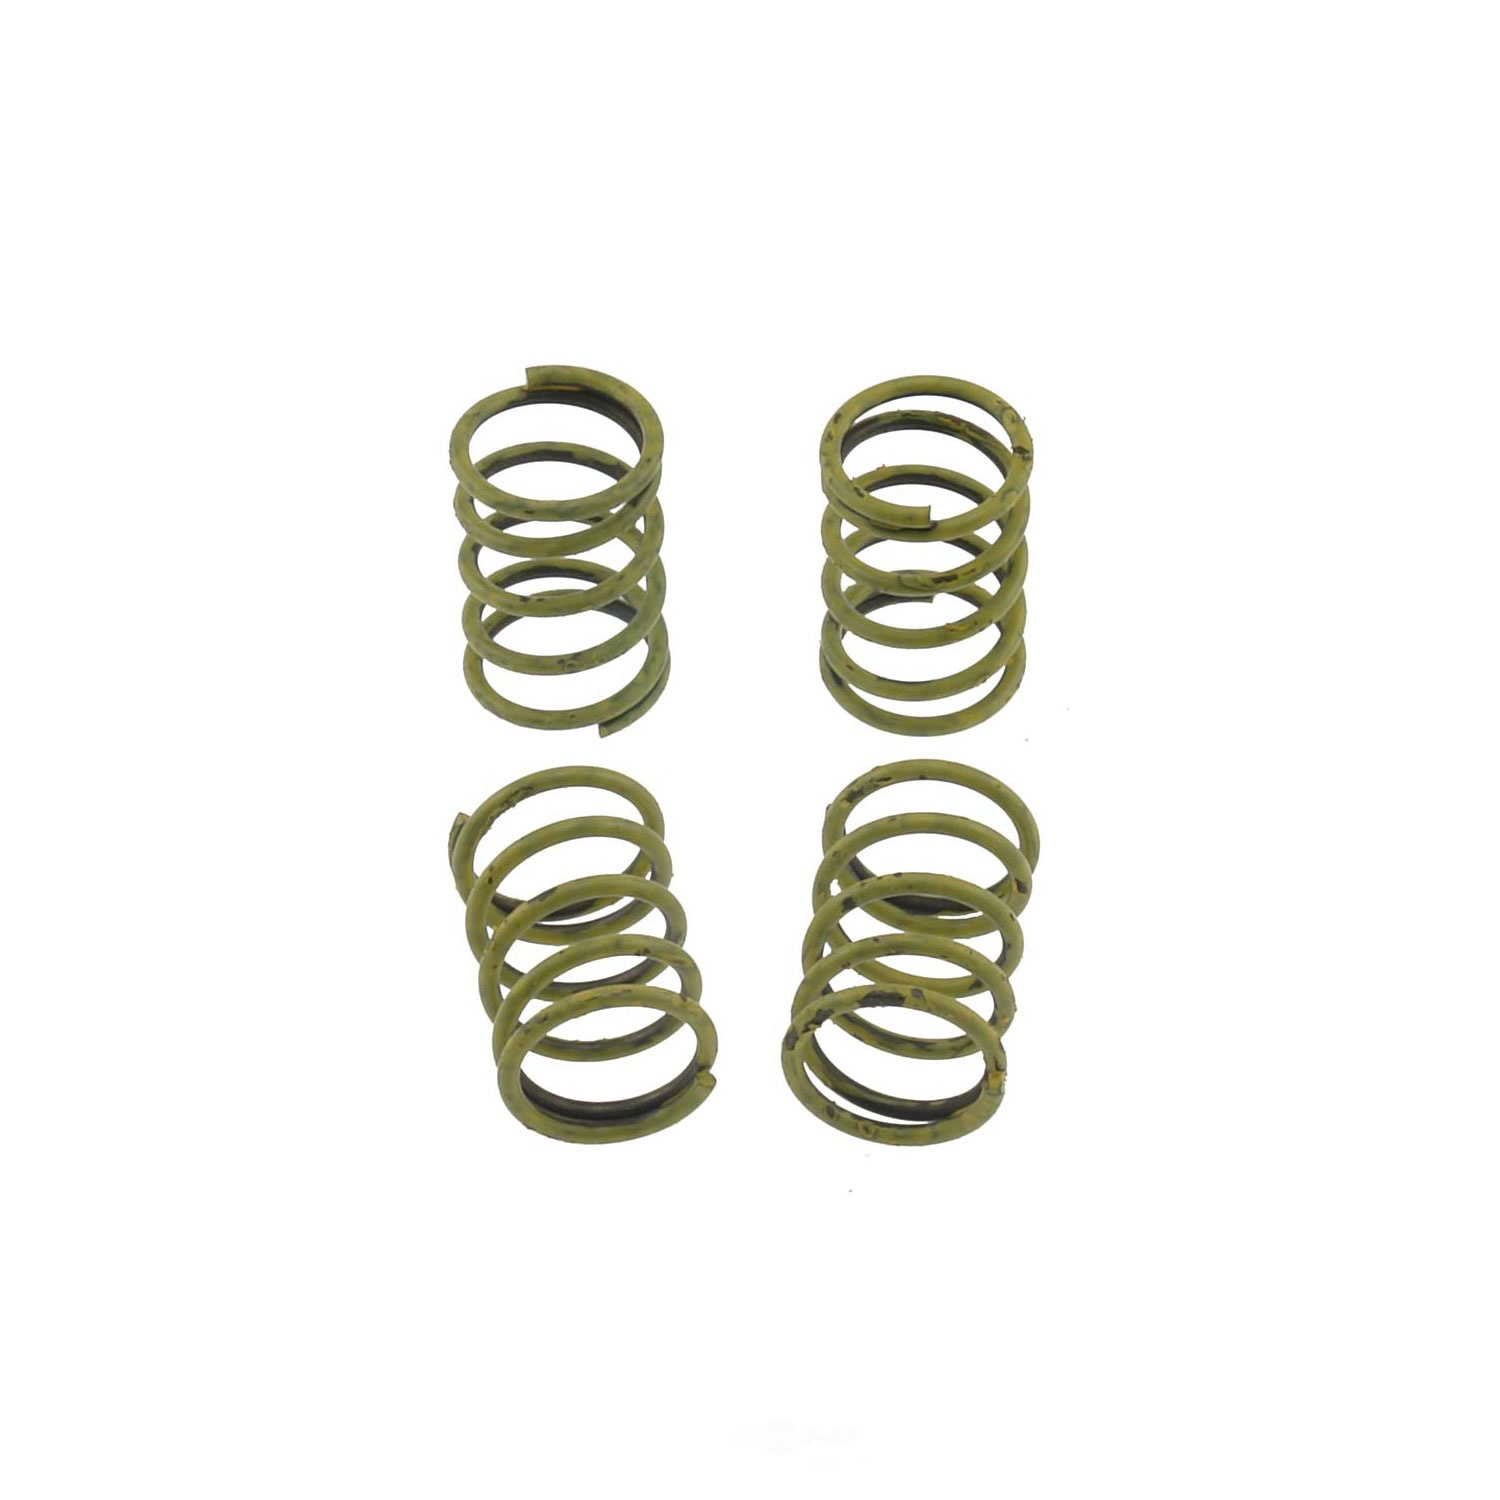 CARLSON QUALITY BRAKE PARTS - Drum Brake Hold Down Spring - CRL H1150-2